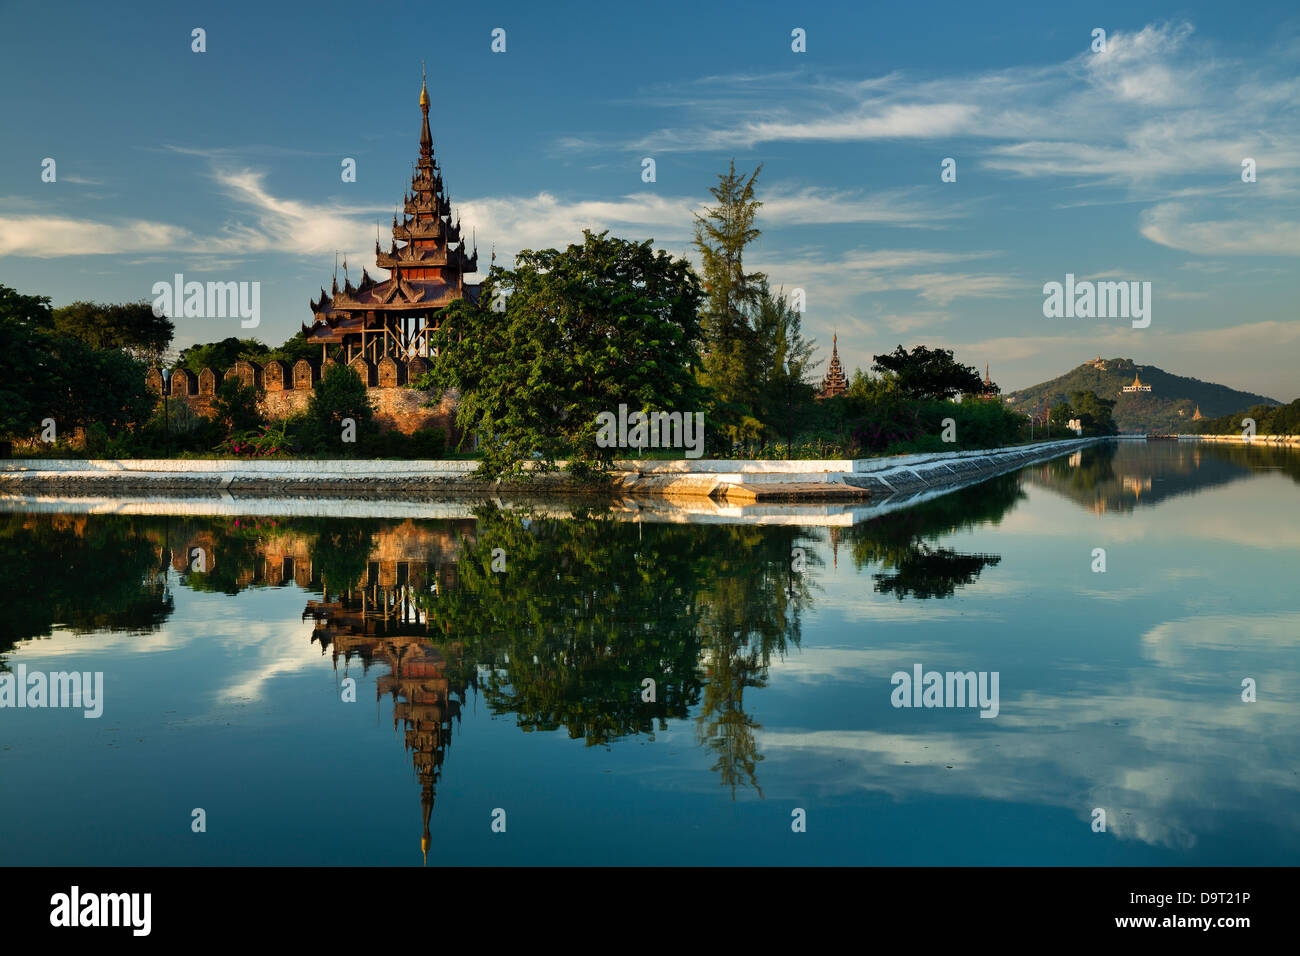 The old Royal City Wall, Mandalay, Burma (Myanmar) - Stock Image